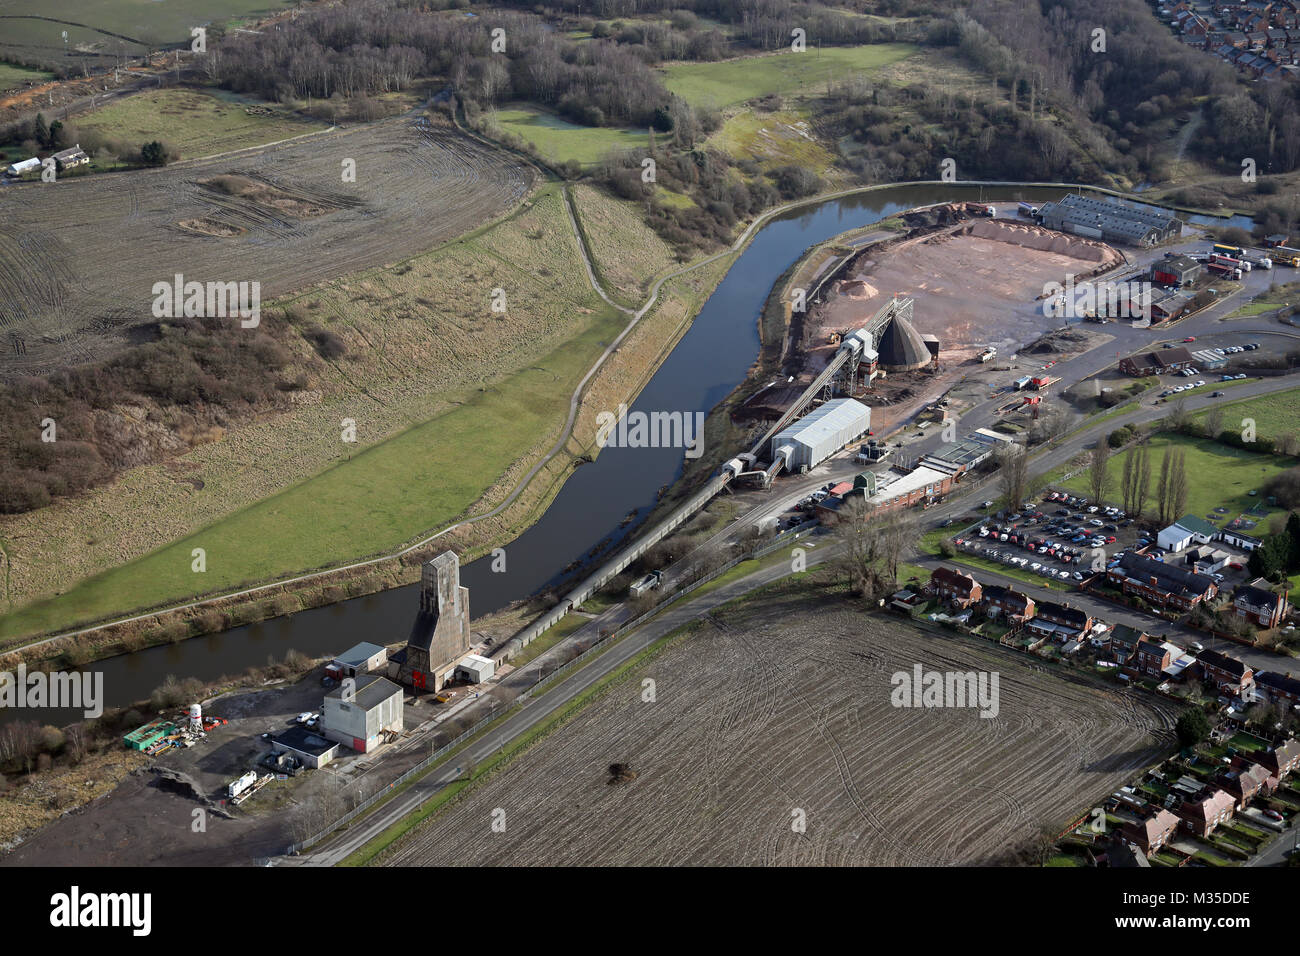 aerial view of  Compass Minerals site at Winsford, Cheshire,UK - Stock Image